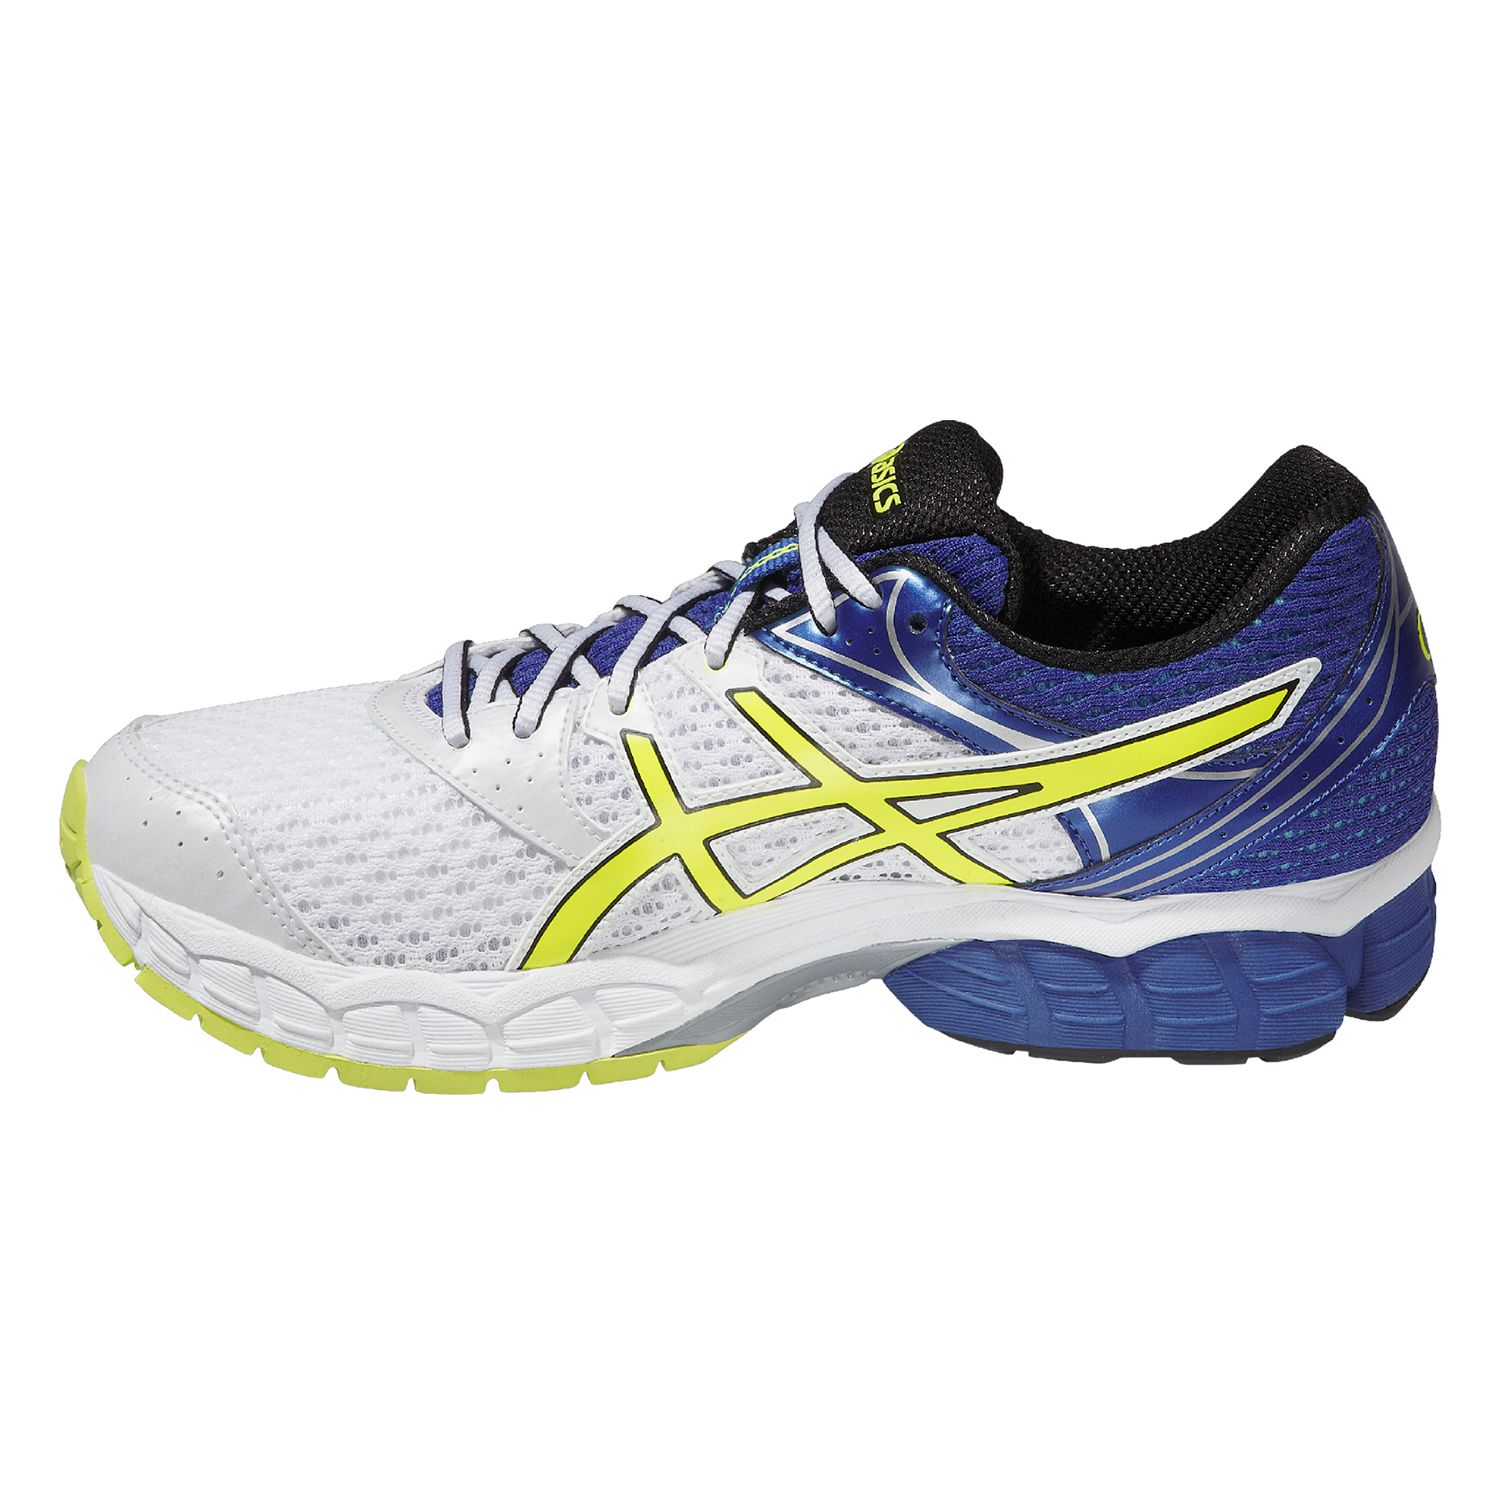 Good Running Shoes Guide